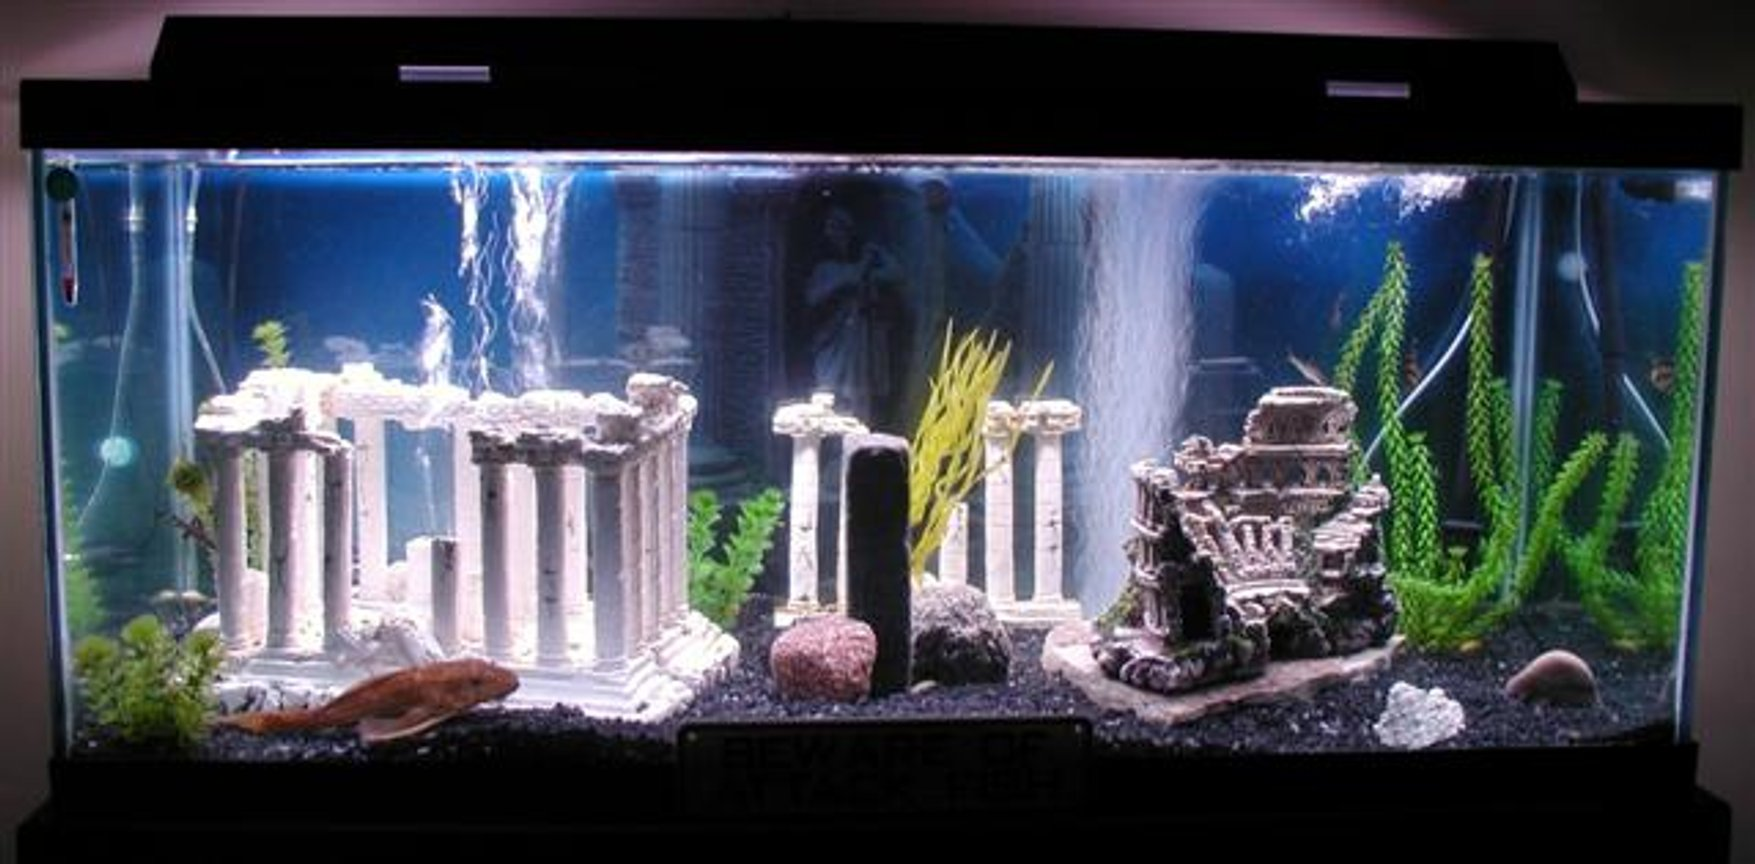 75 gallons freshwater fish tank (mostly fish and non-living decorations) - My Atlantis